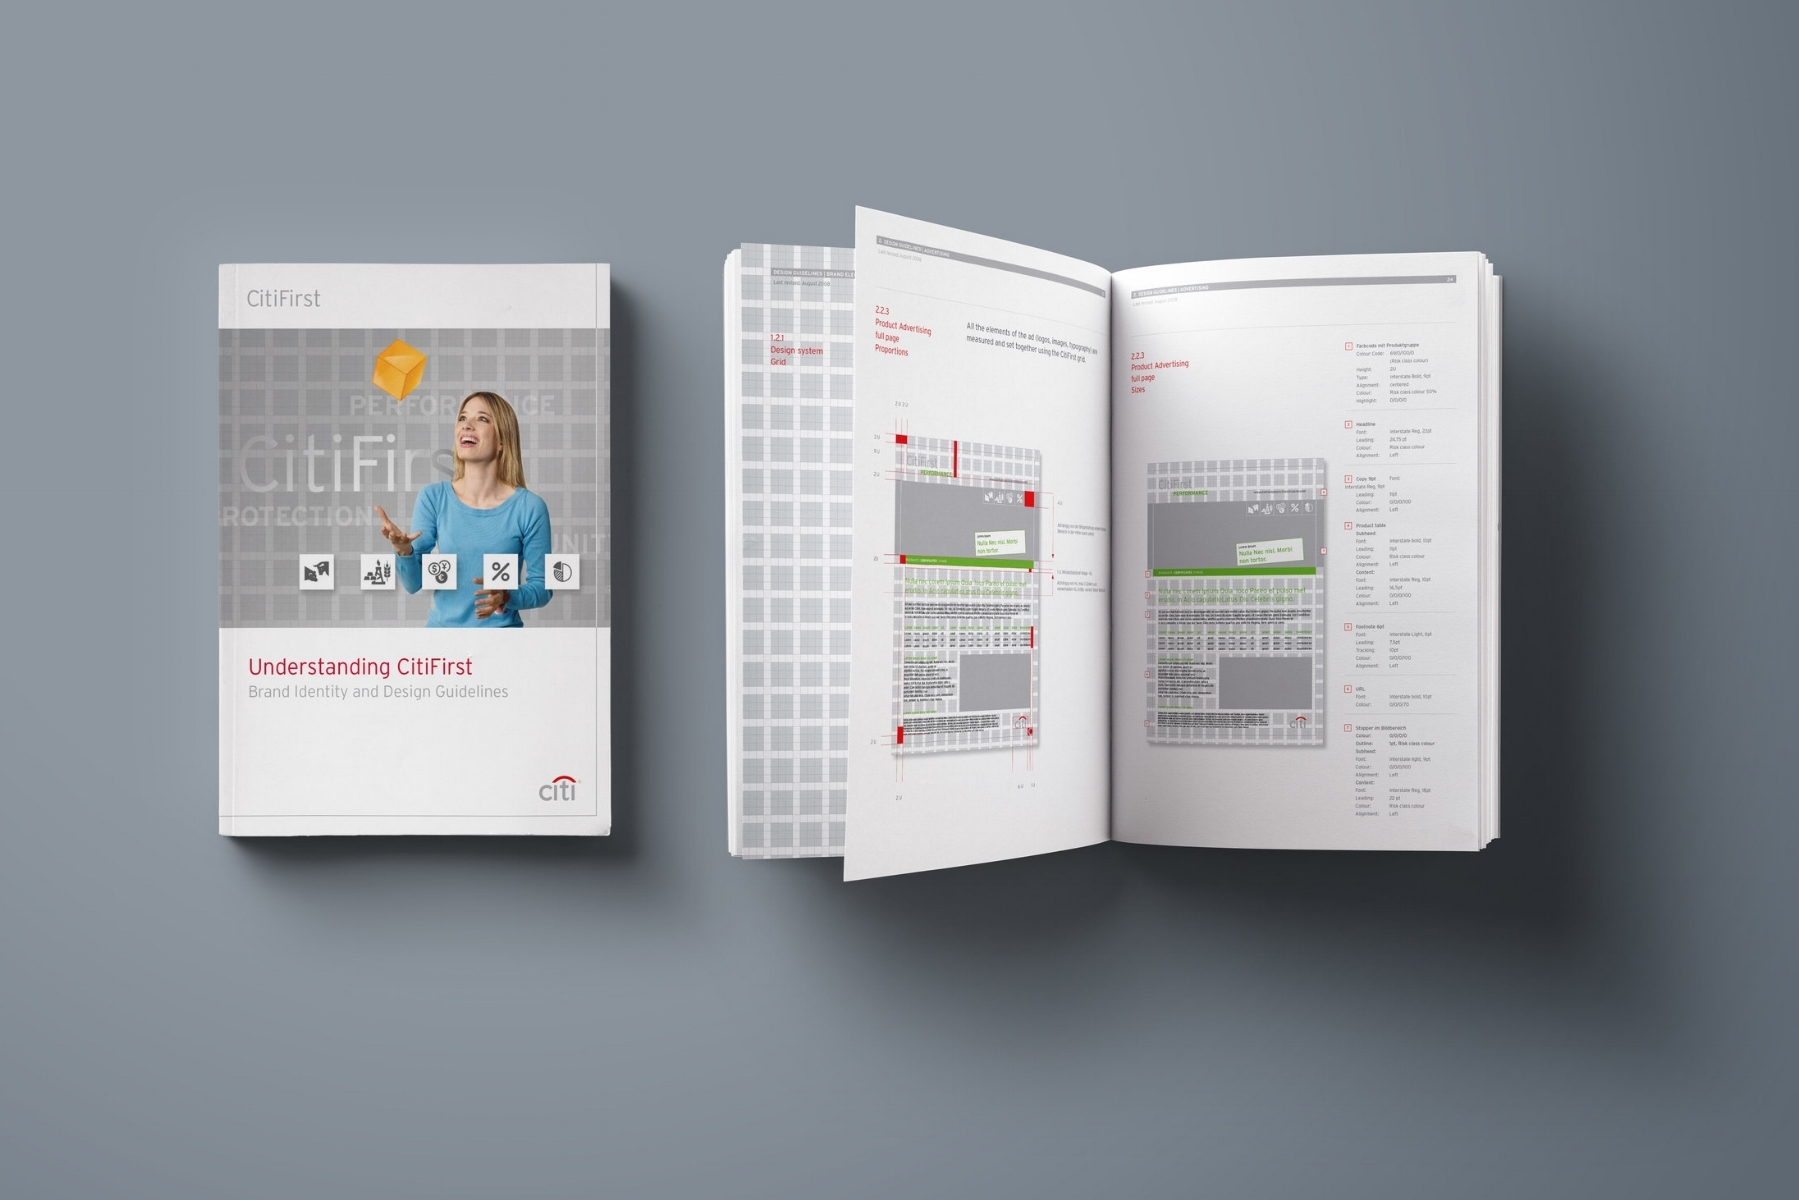 CITI FIRST BRAND DESIGN GUIDELINES